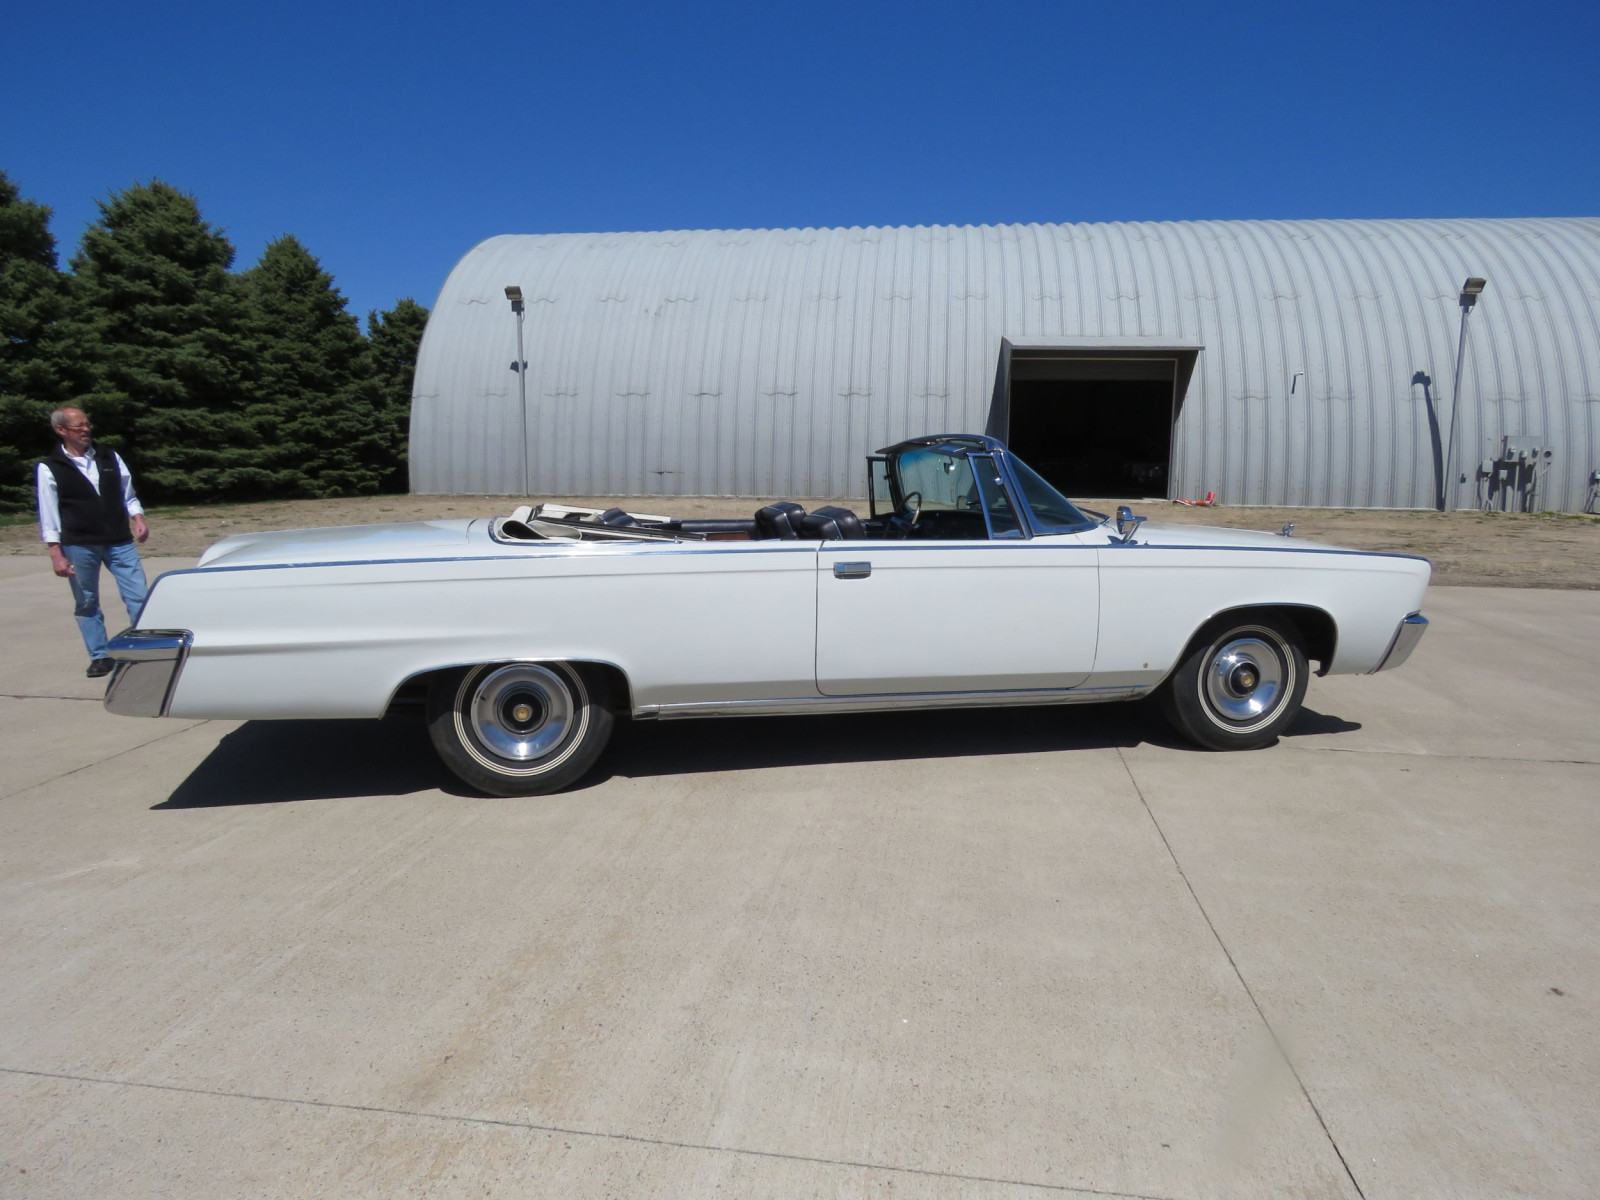 1965 Chrysler Imperial Crown Convertible - Image 9